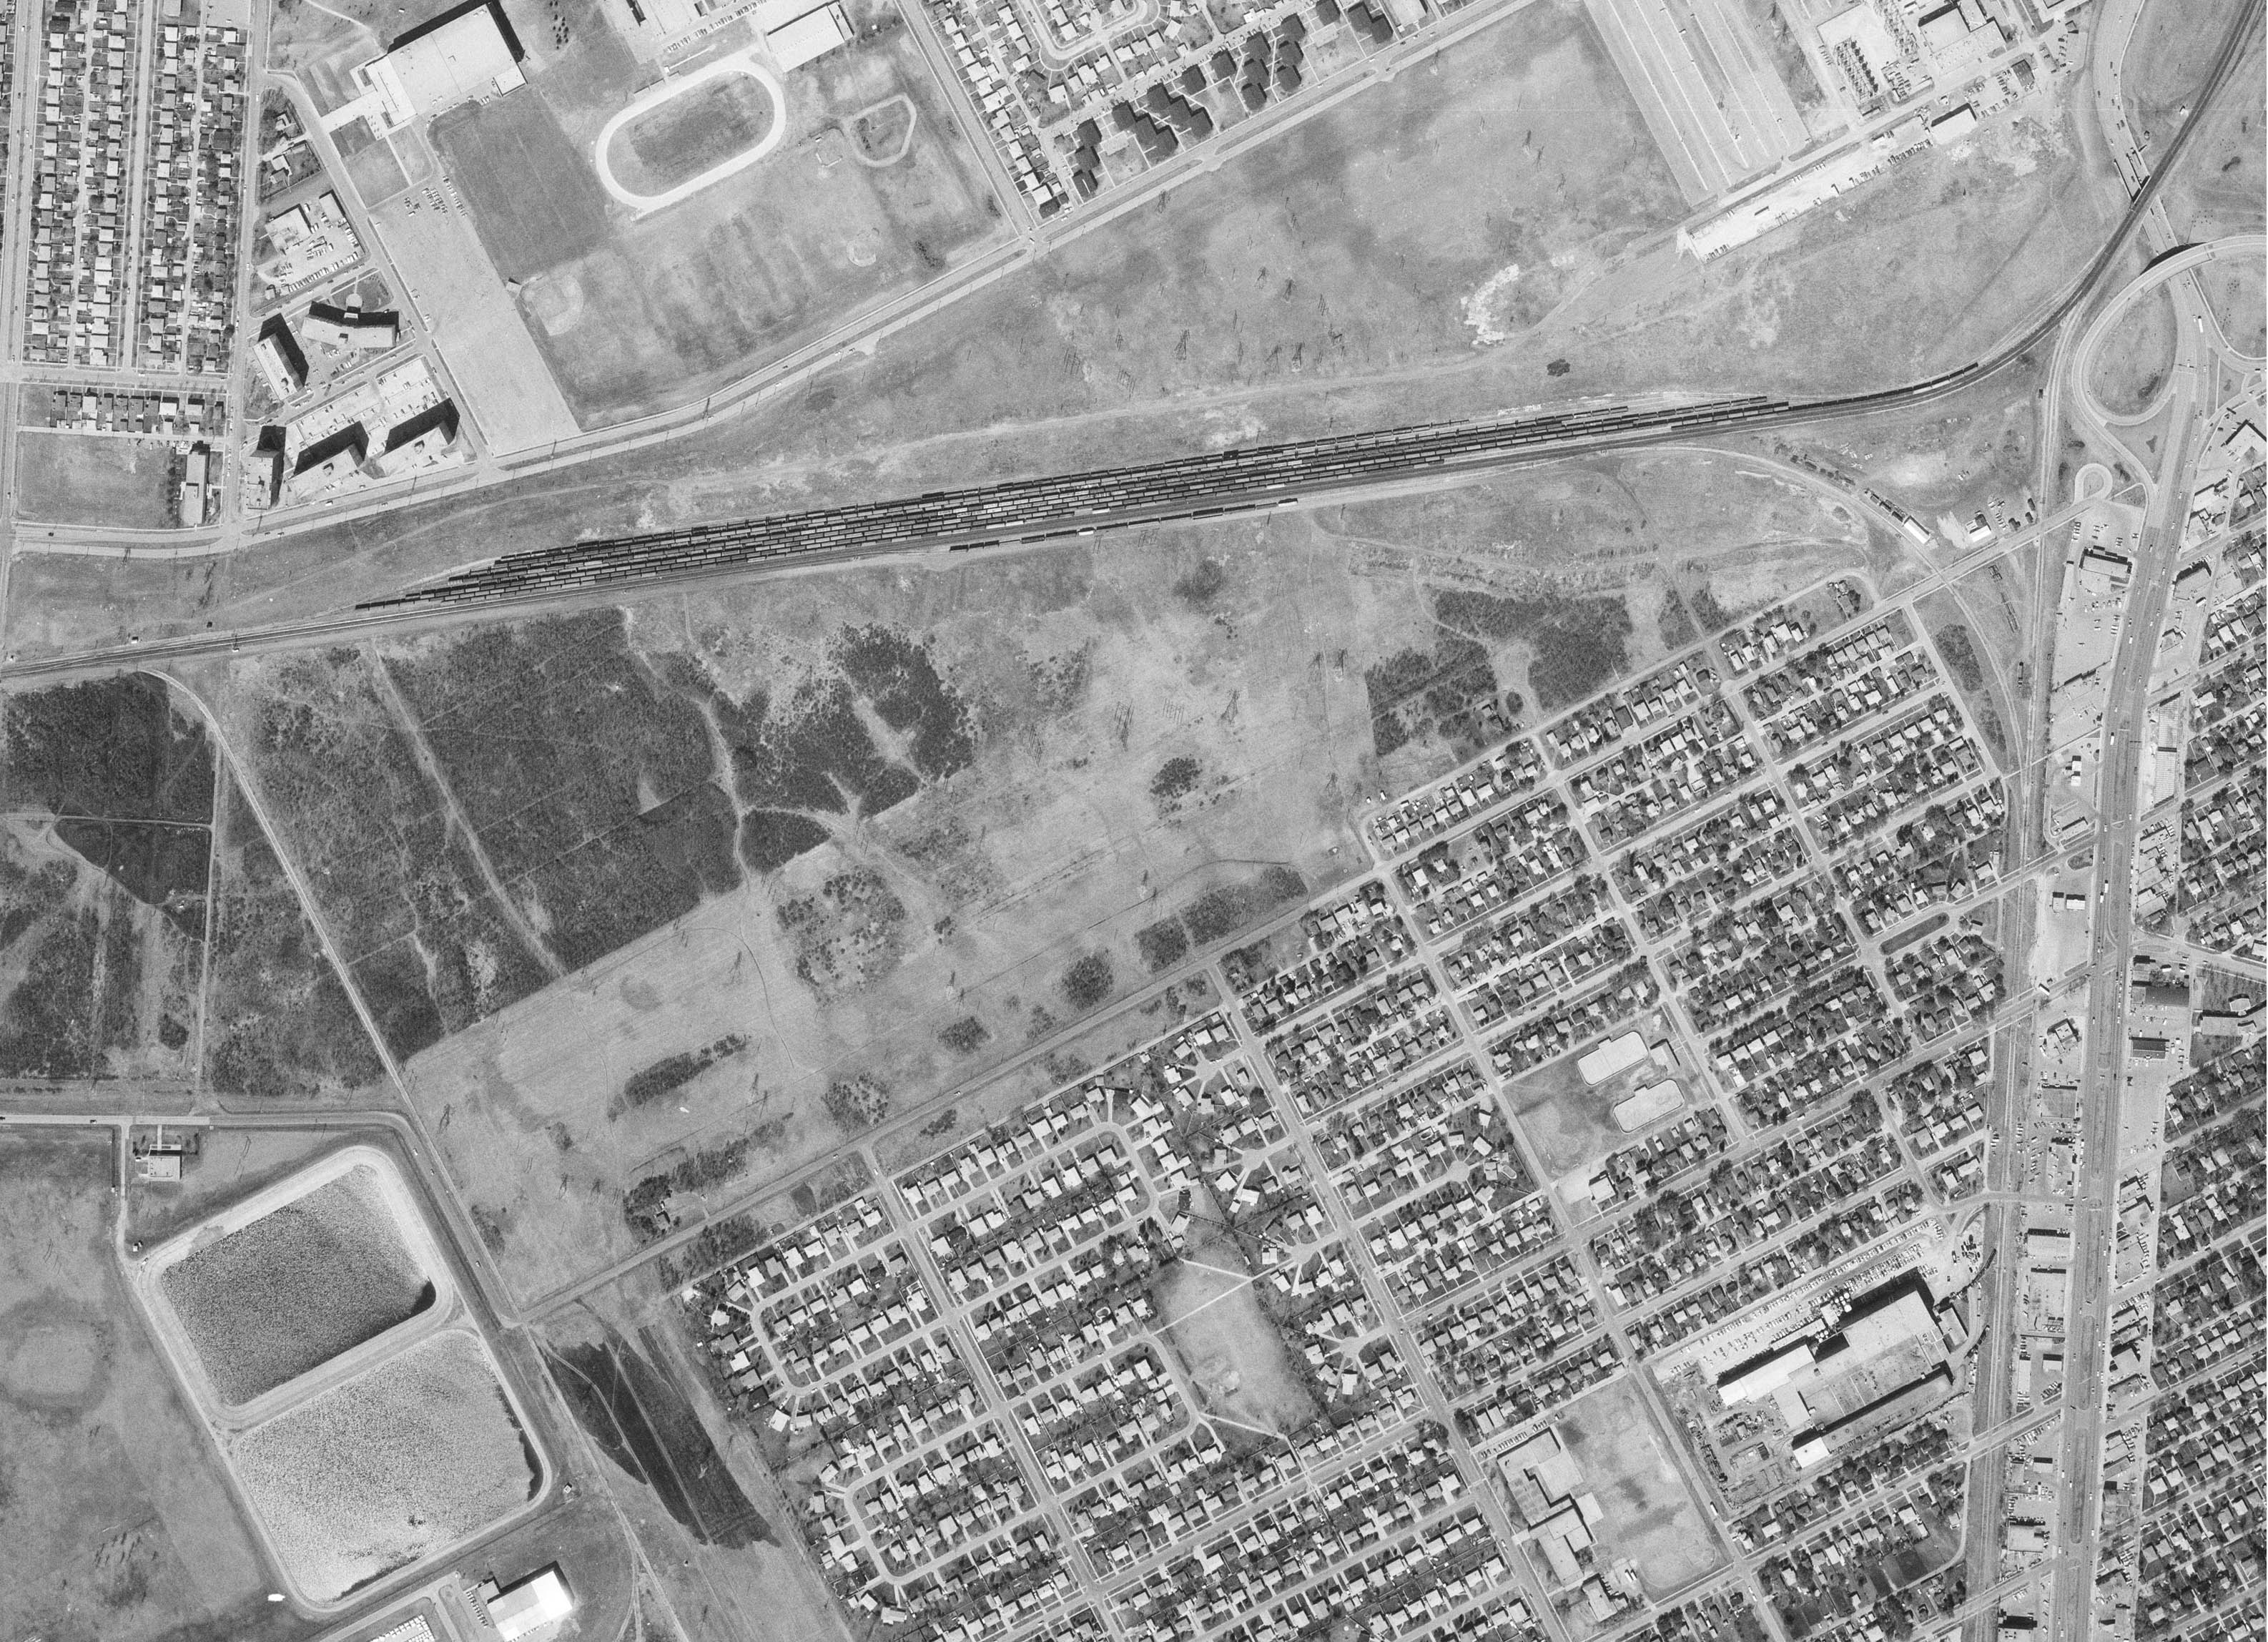 1977 Aerial Photo from National Earth Observation Data Framework, Govt. of Canada